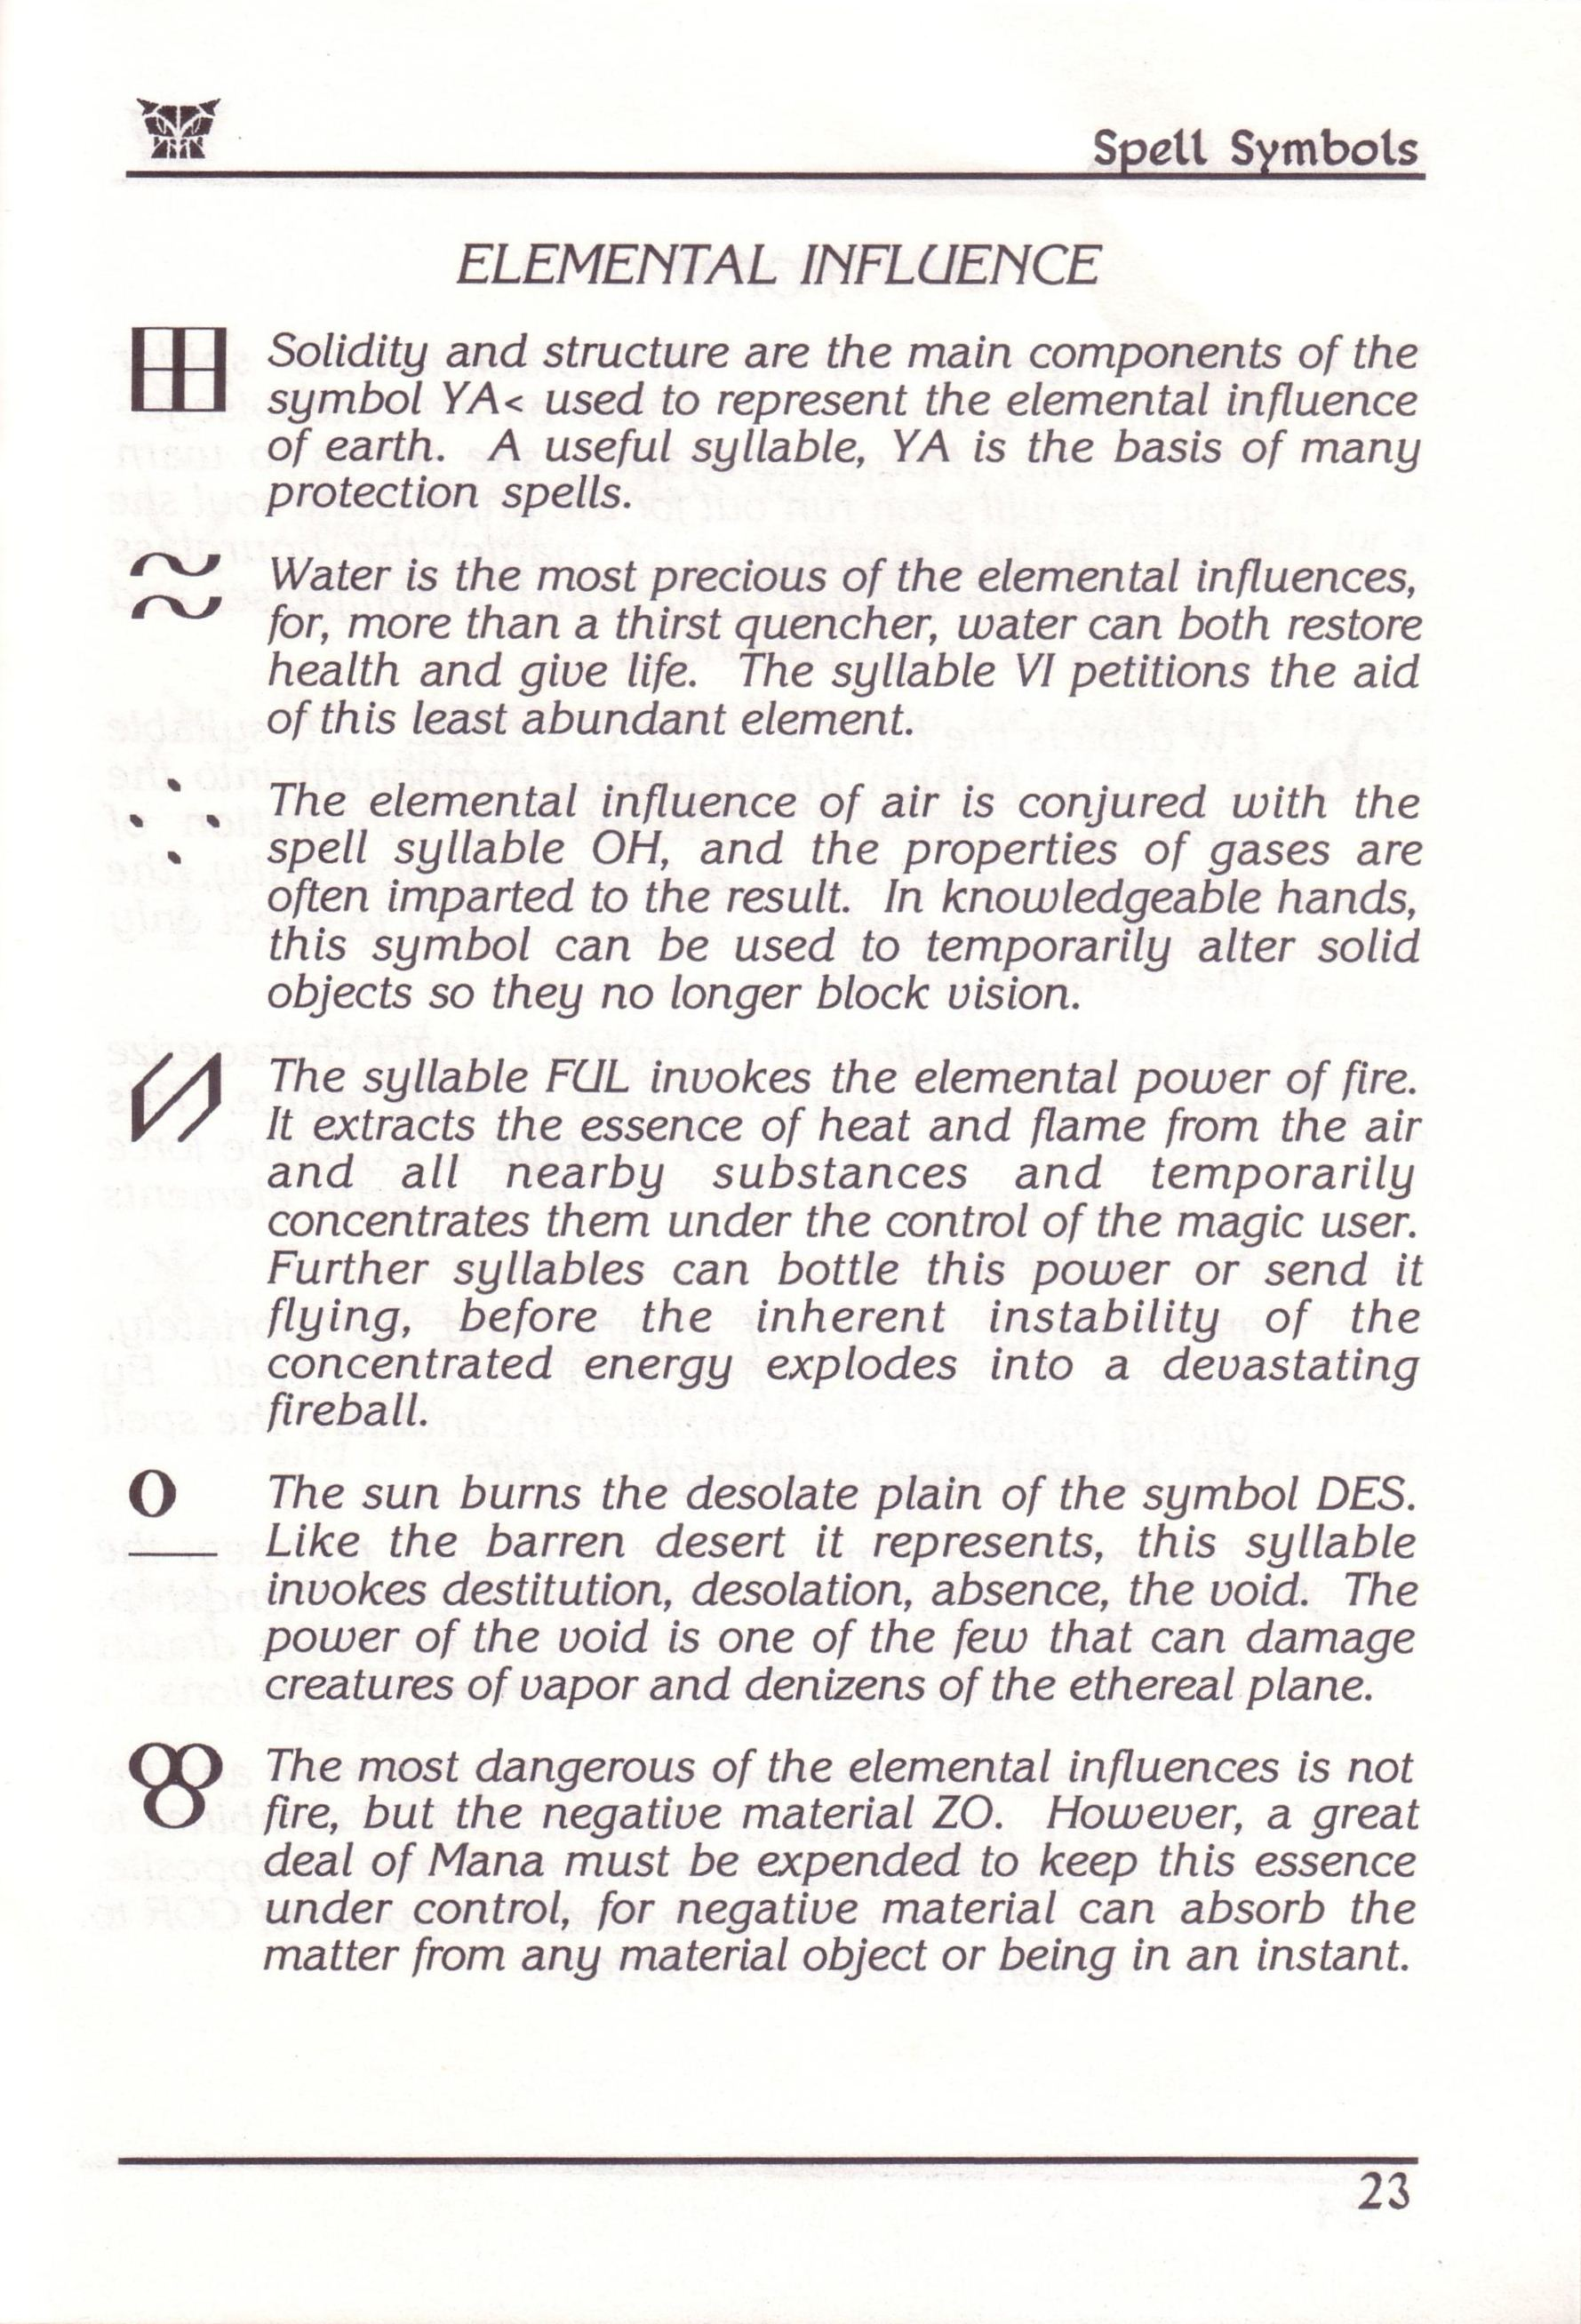 Dungeon Master for PC with FTL Sound Adapter (US Release) - Manual Page 47